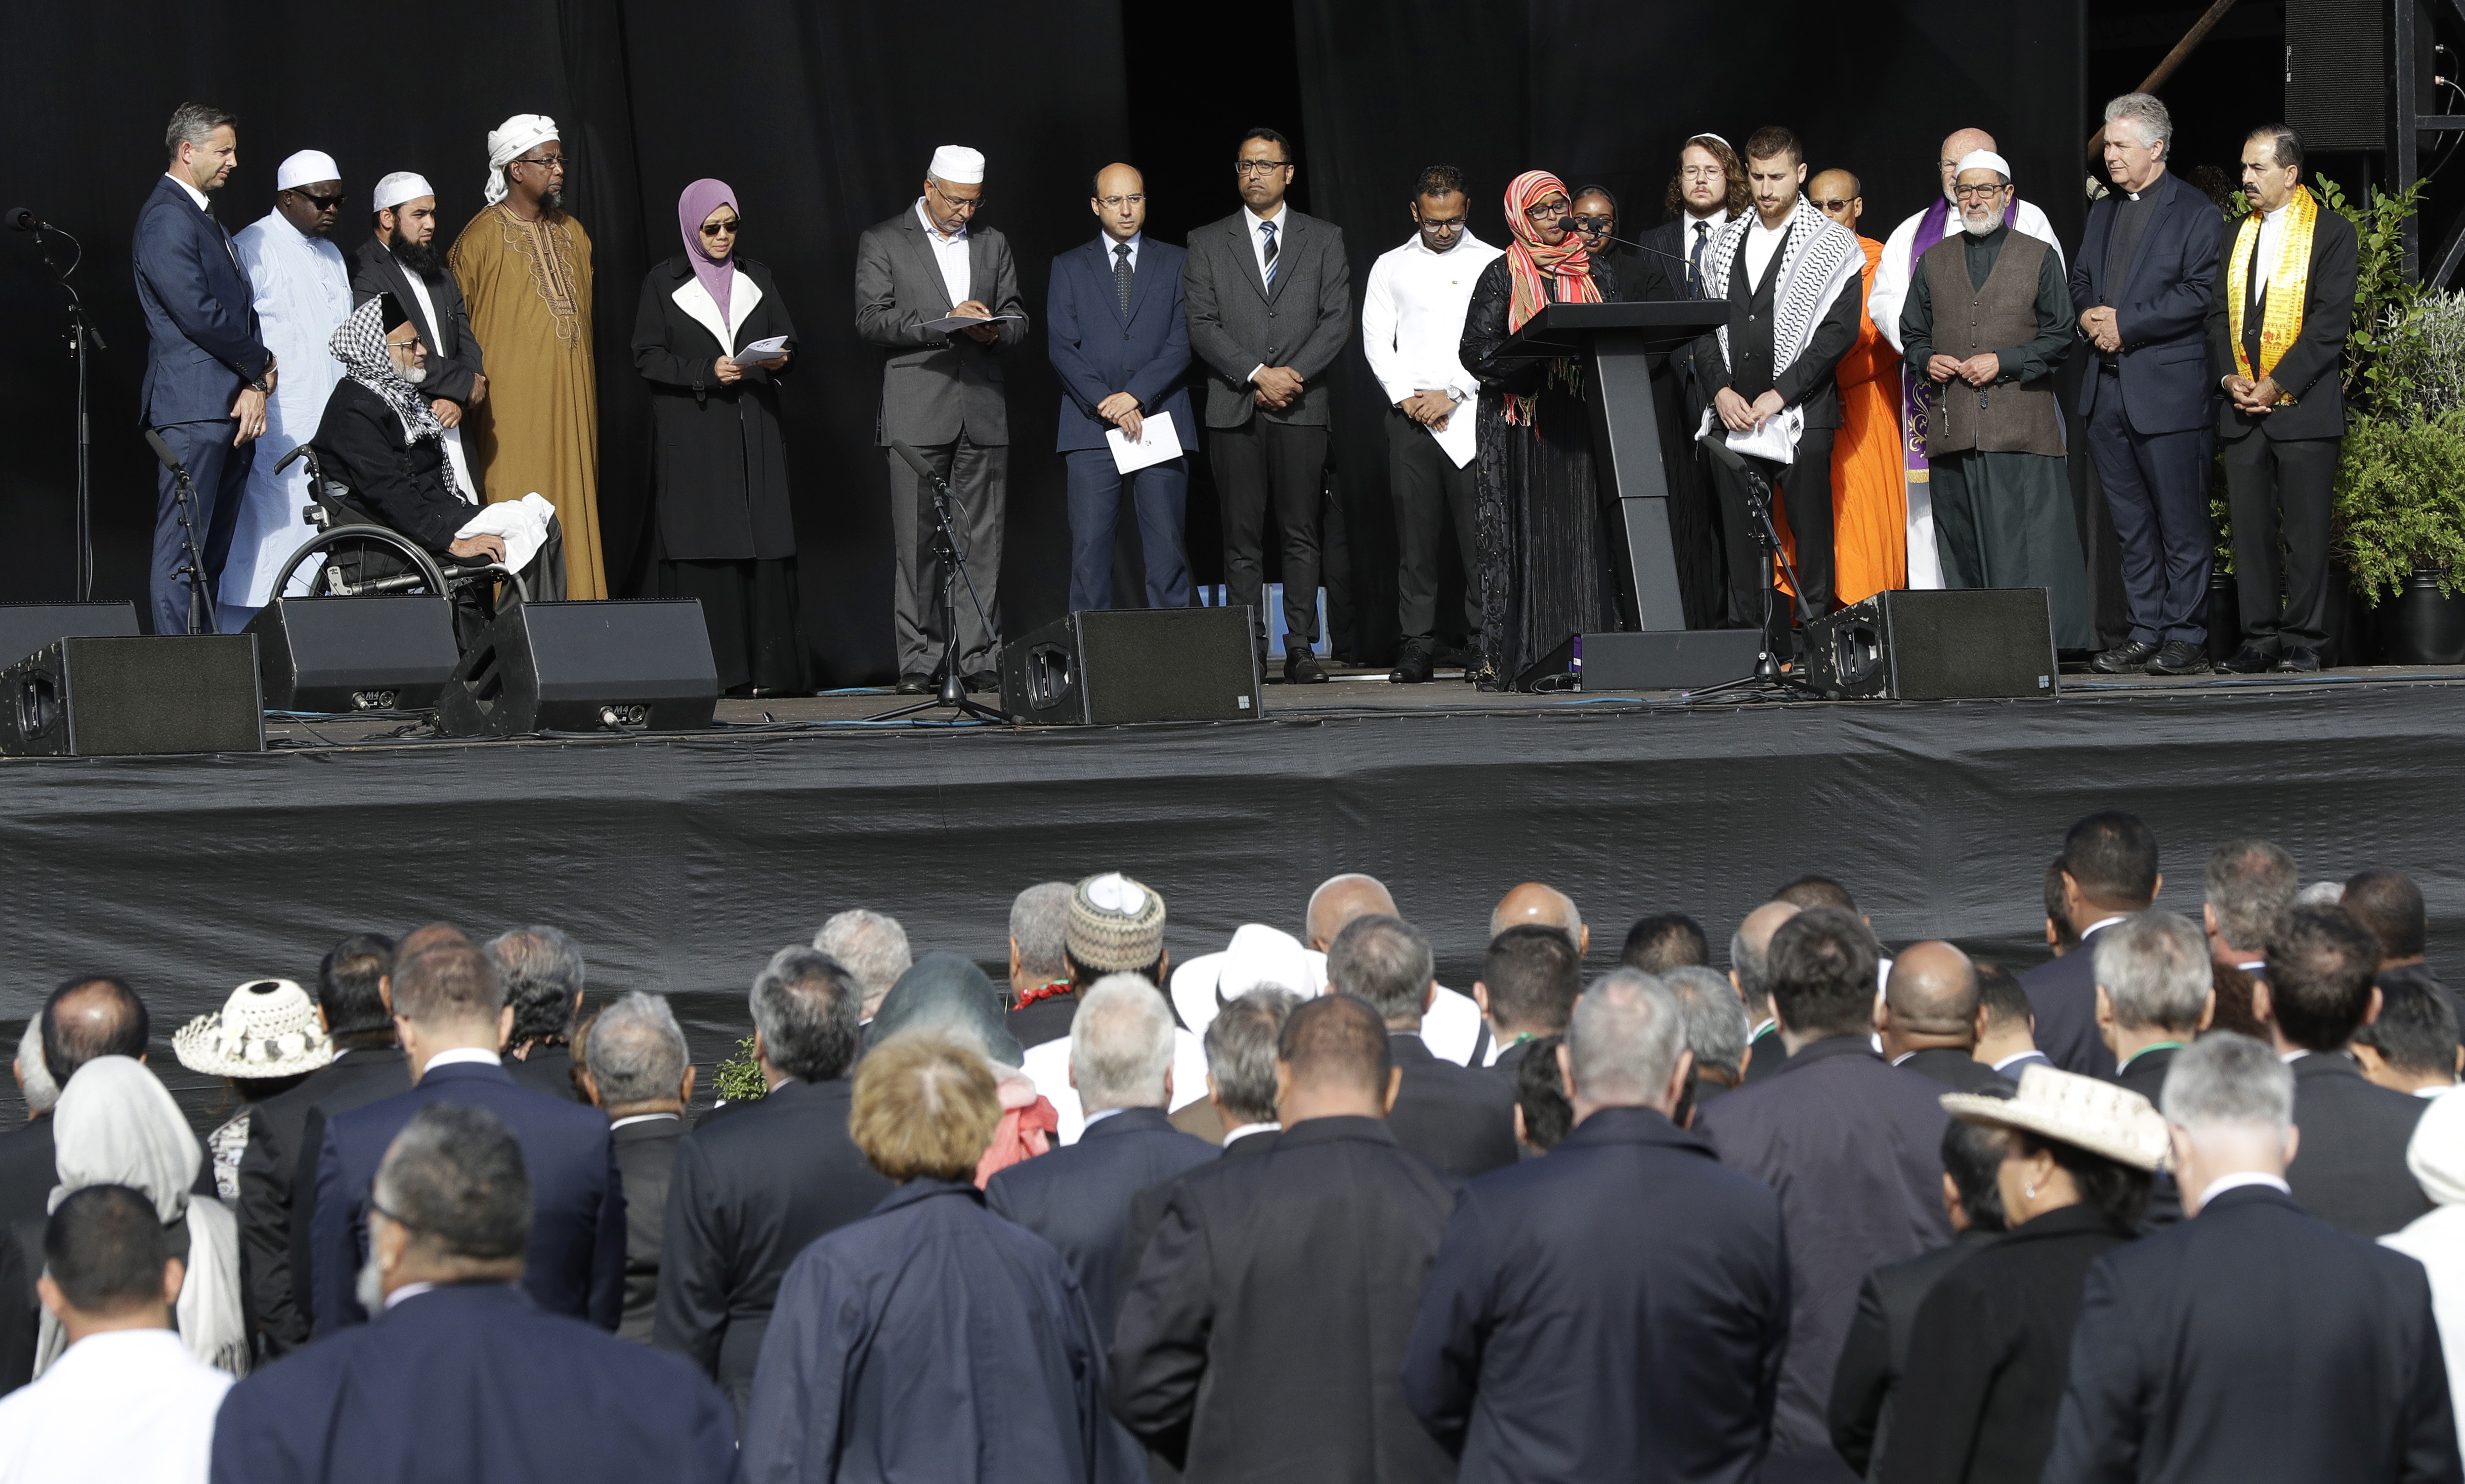 Members of the Christchurch Muslim community read the names of the dead during a national remembrance service for the victims of the March 15 mosques terrorist attack in Christchurch, New Zealand, Friday, March 29, 2019. (AP Photo/Mark Baker)